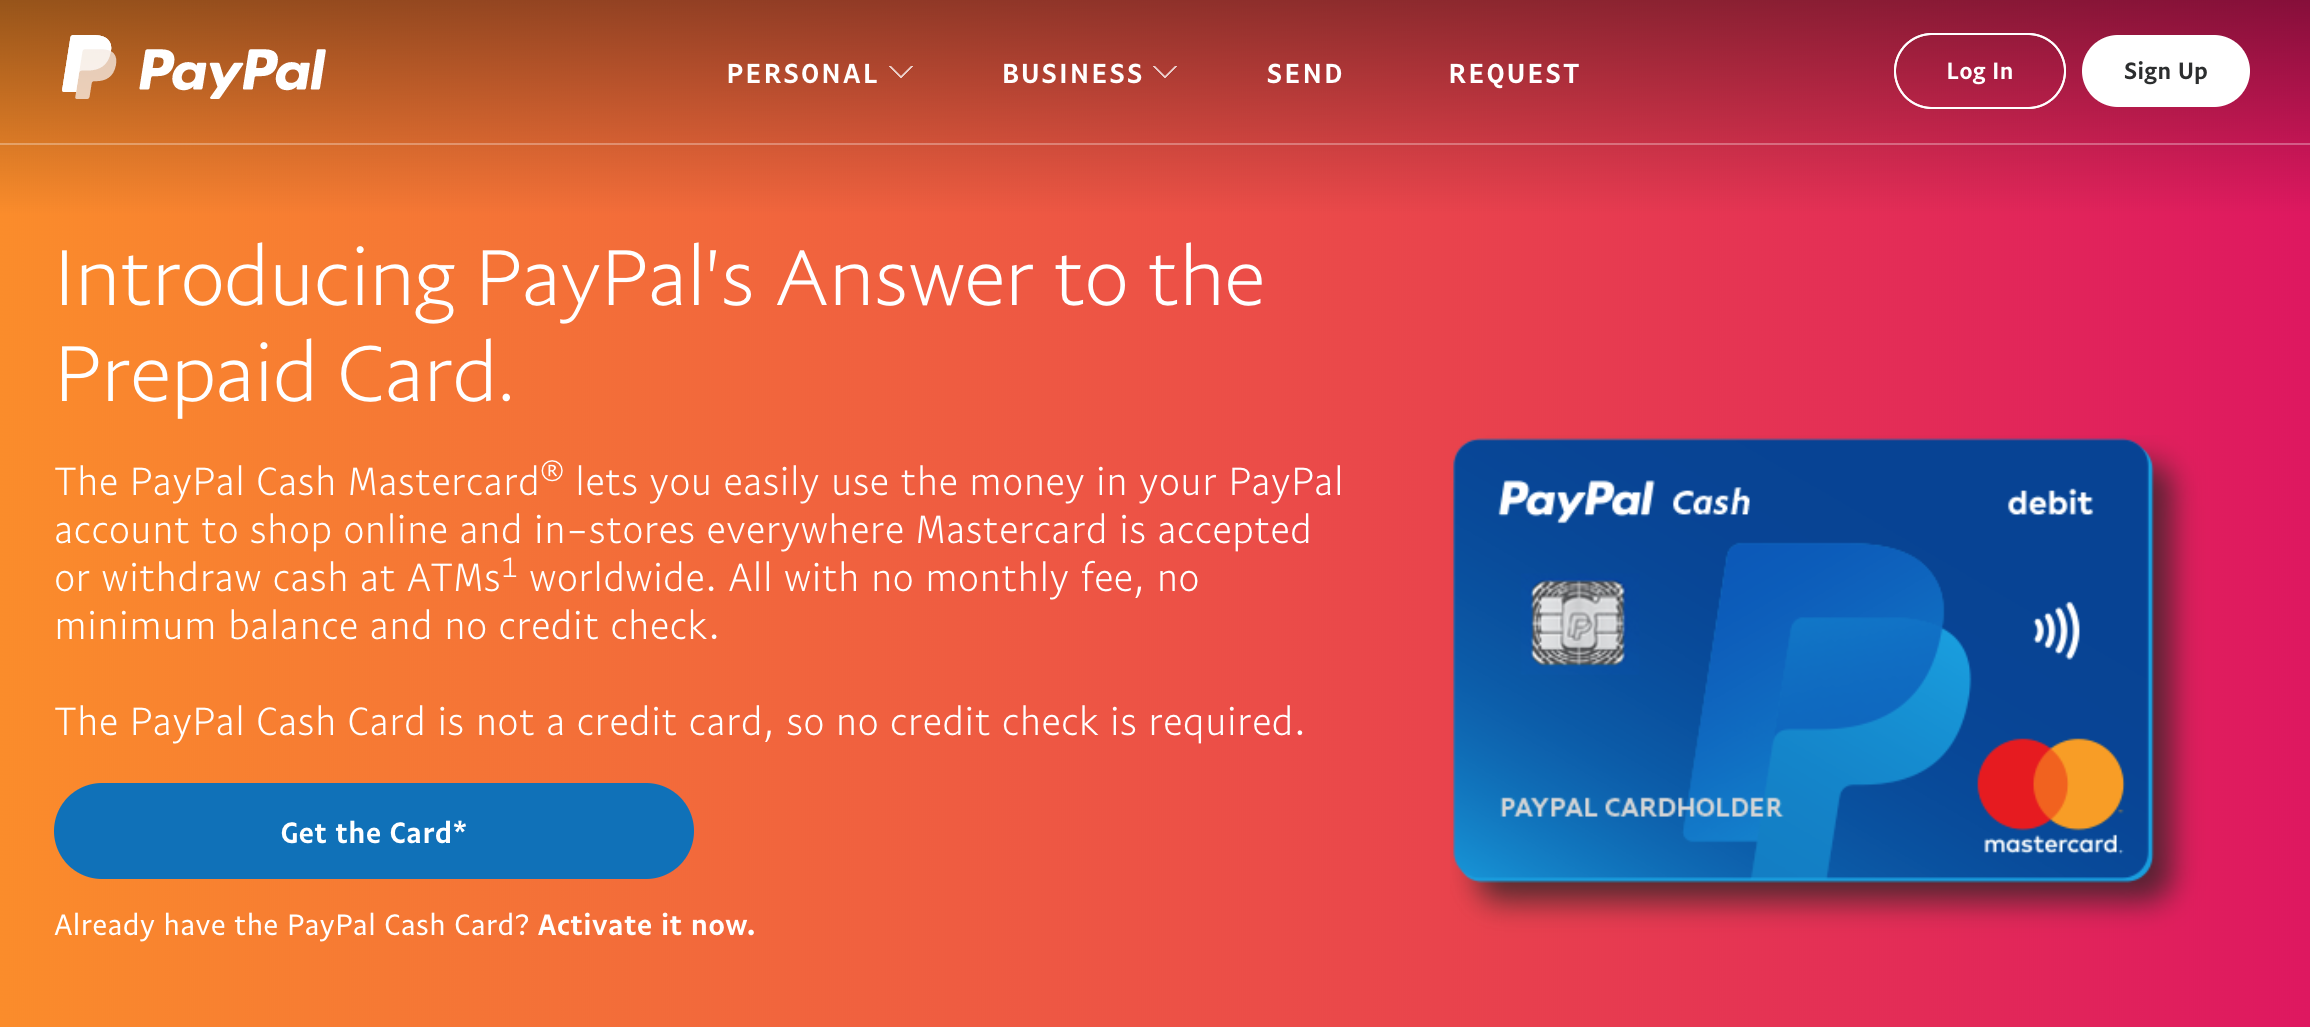 paypal prepaid mastercard cash mastercard debit cards worth it